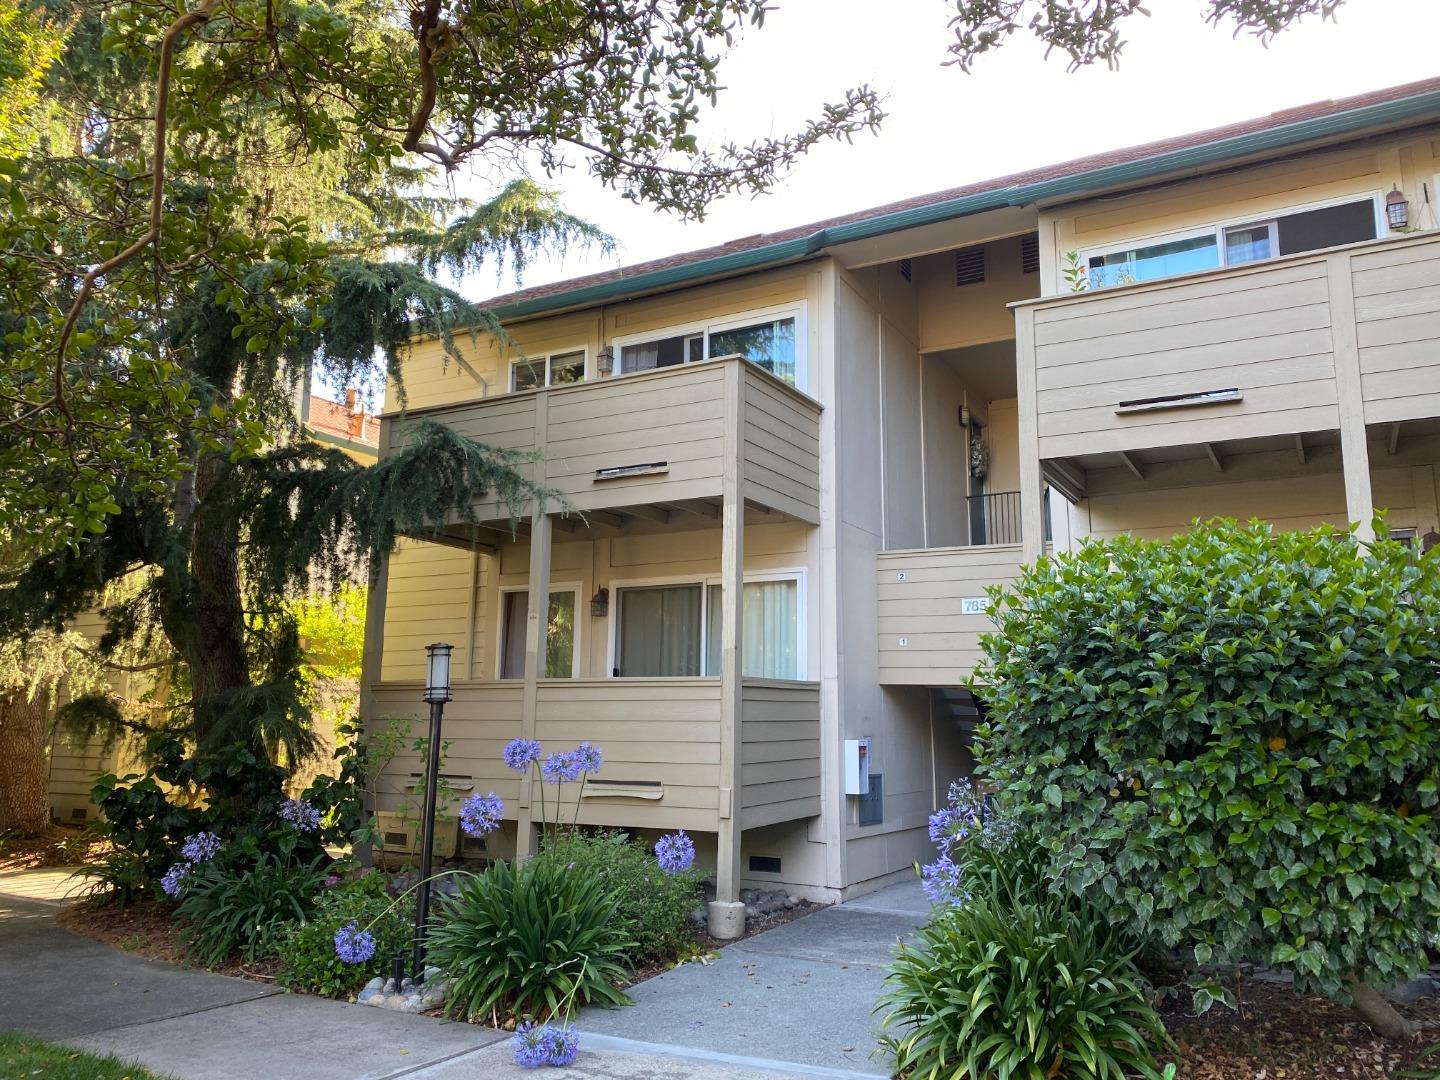 "Best location in the complex away from the street! This stunning upstairs end unit has been completely enhanced and upgraded including handsome wood color laminate floors, dual pane ""Milgard"" windows including sliding door. Lots of natural light throughout. Spacious living room dining room w/sliding door to private balcony overlooking the garden and the pool. Large bedrooms w/closet organizers. Granite counters in kitchen & bath. Crown moldings. Ceiling fan in dining room & master bedroom. Kitchen features Shaker cabinets, stainless steel refrigerator, stove, micro & dishwasher. Indoor laundry, washer & dryer included. Remodeled bathroom. Added insulation in bedroom walls. A/C unit in dining room. Carport. Xtra storage unit. Community amenities include playground, swimming pool & BBQ area. Quiet location yet just minutes away from stores, major freeways, light train & high tech companies Apple (4.6m), Google (5.5m), Facebook, Amazon, Microsoft and more. Short walk to large park & shops"